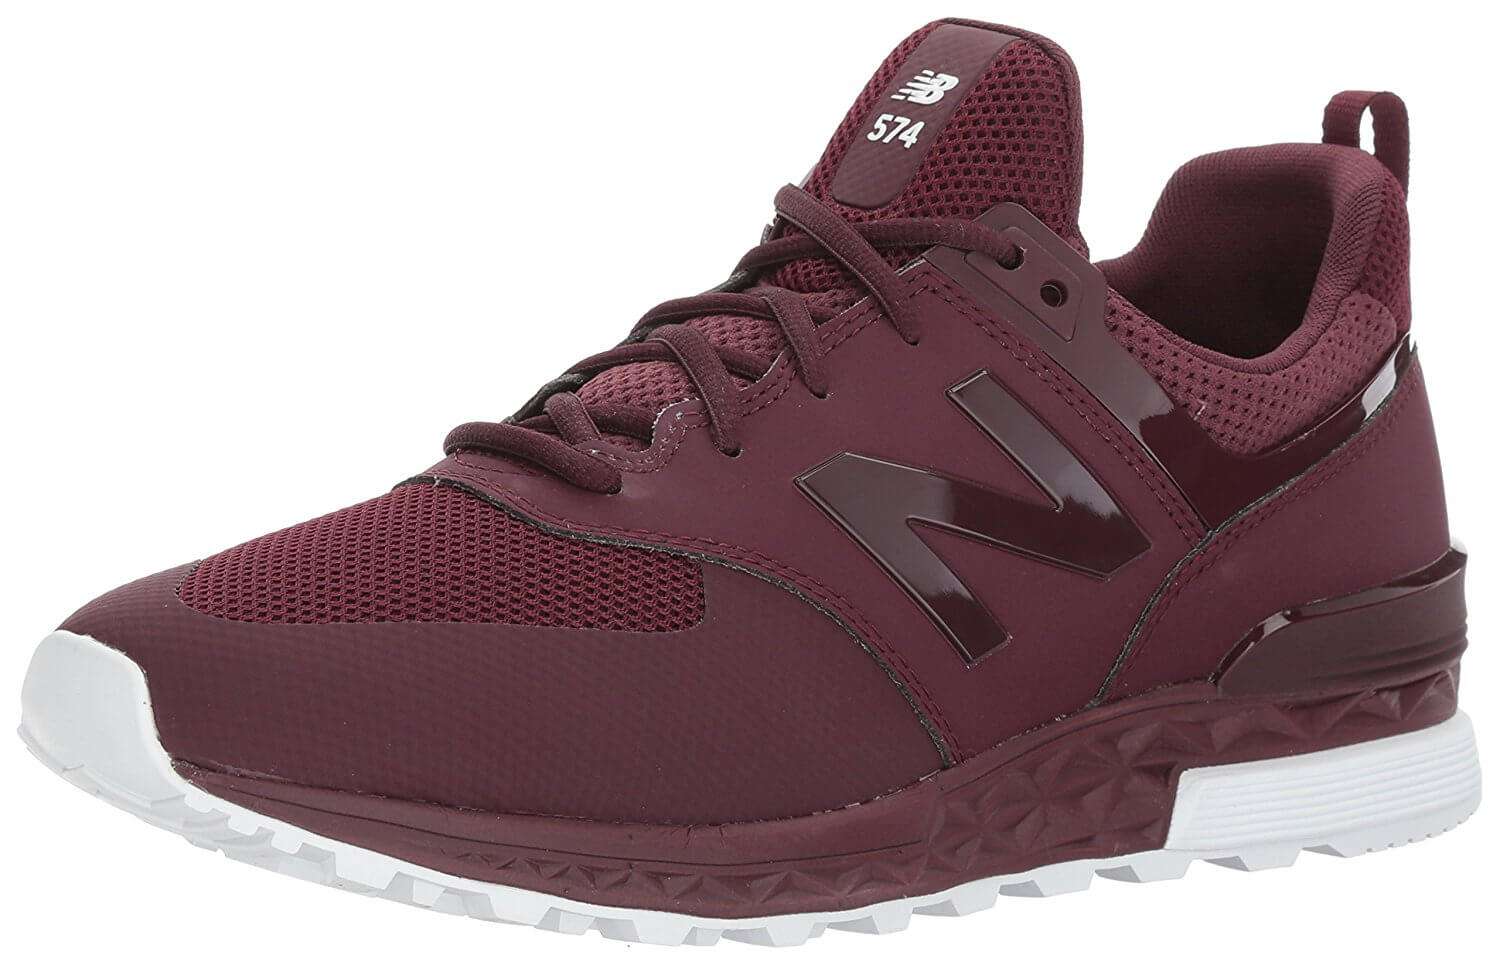 New Balance 574 Sport Women's Casual Shoes Flat